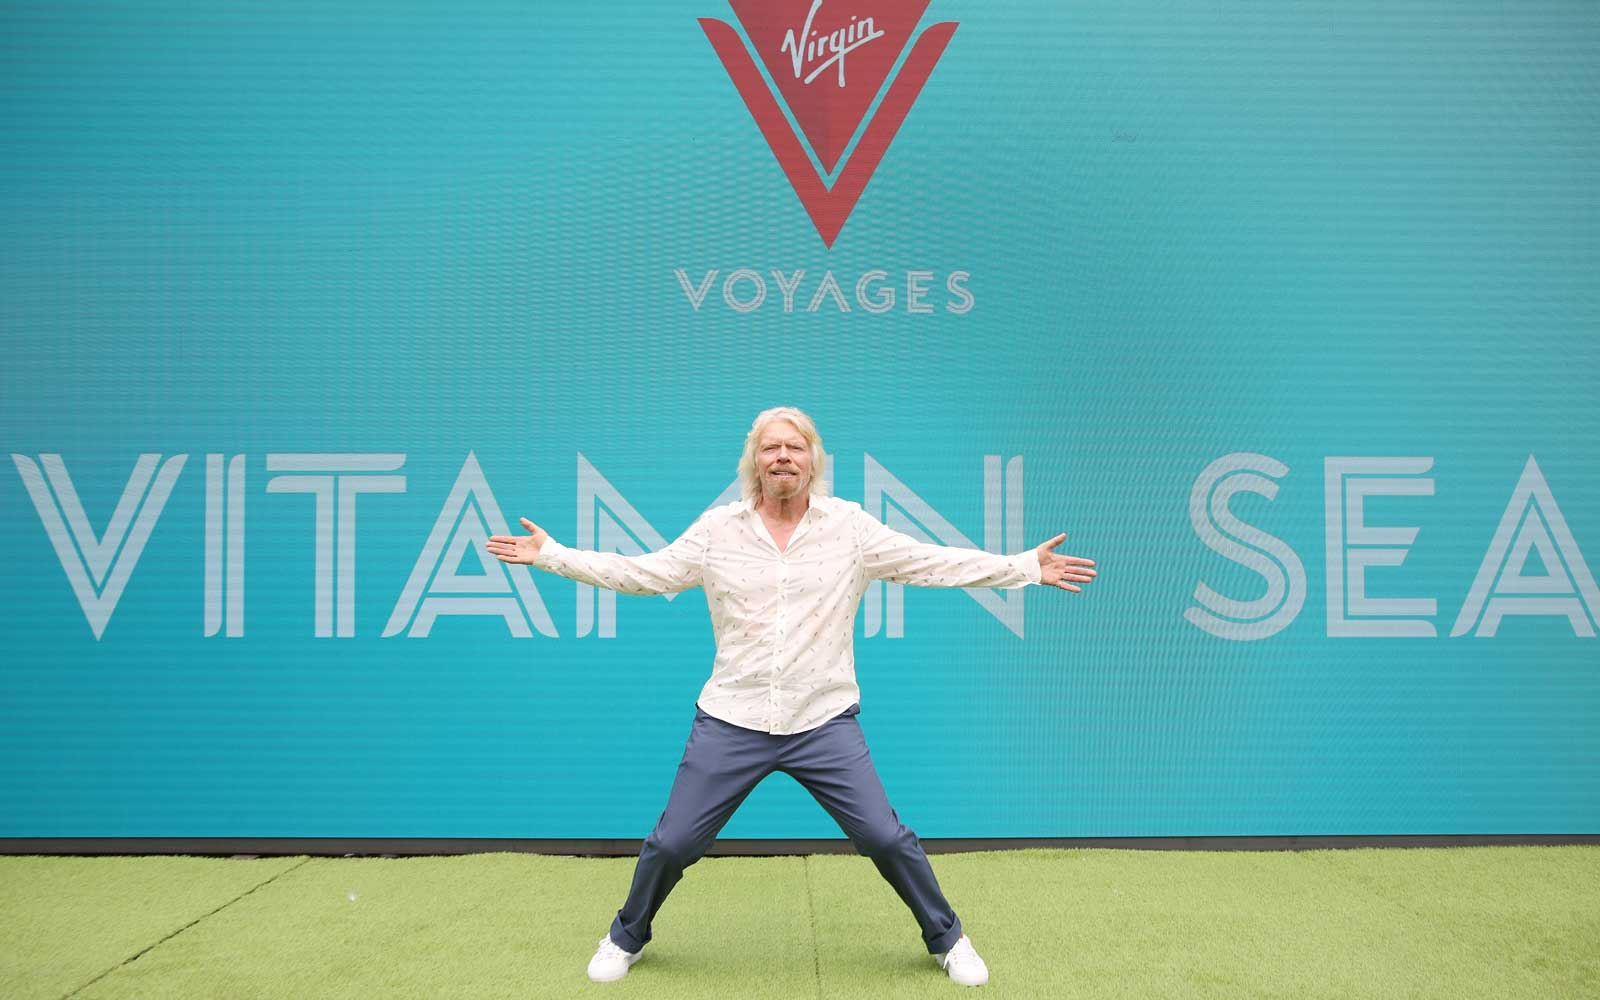 Virgin Voyages Unveils Vitamin Sea with Sir Richard Branson